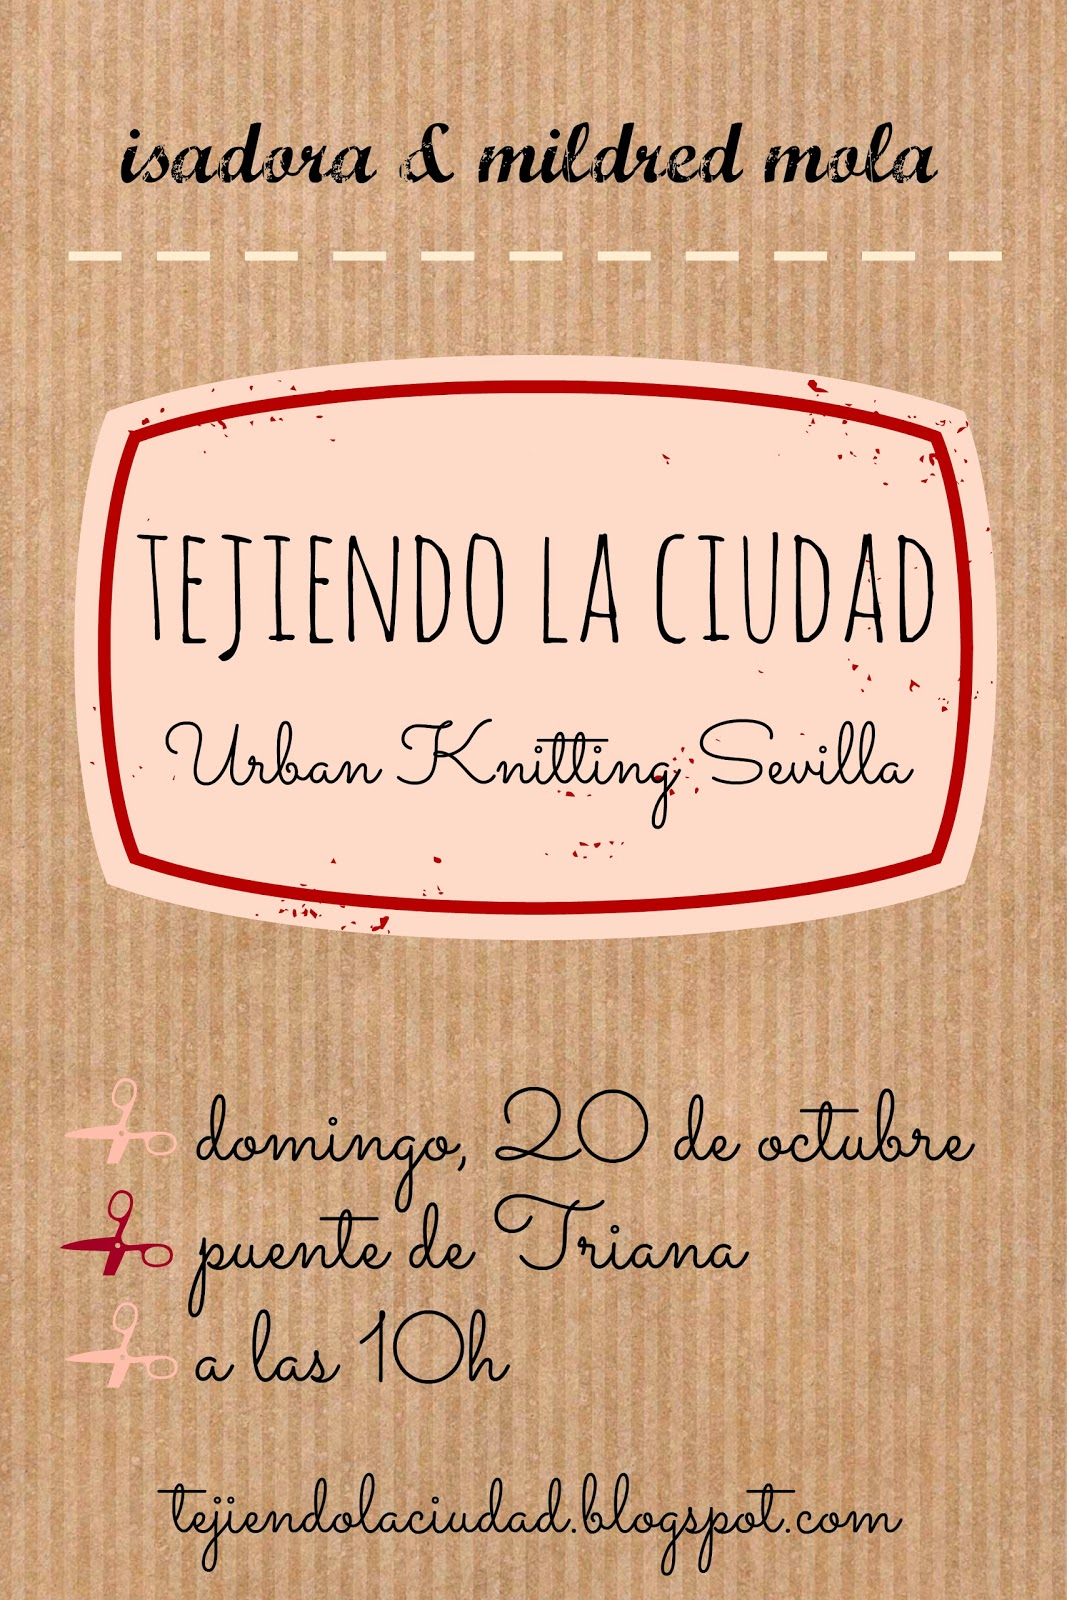 Urban Knitting Tejamos Triana